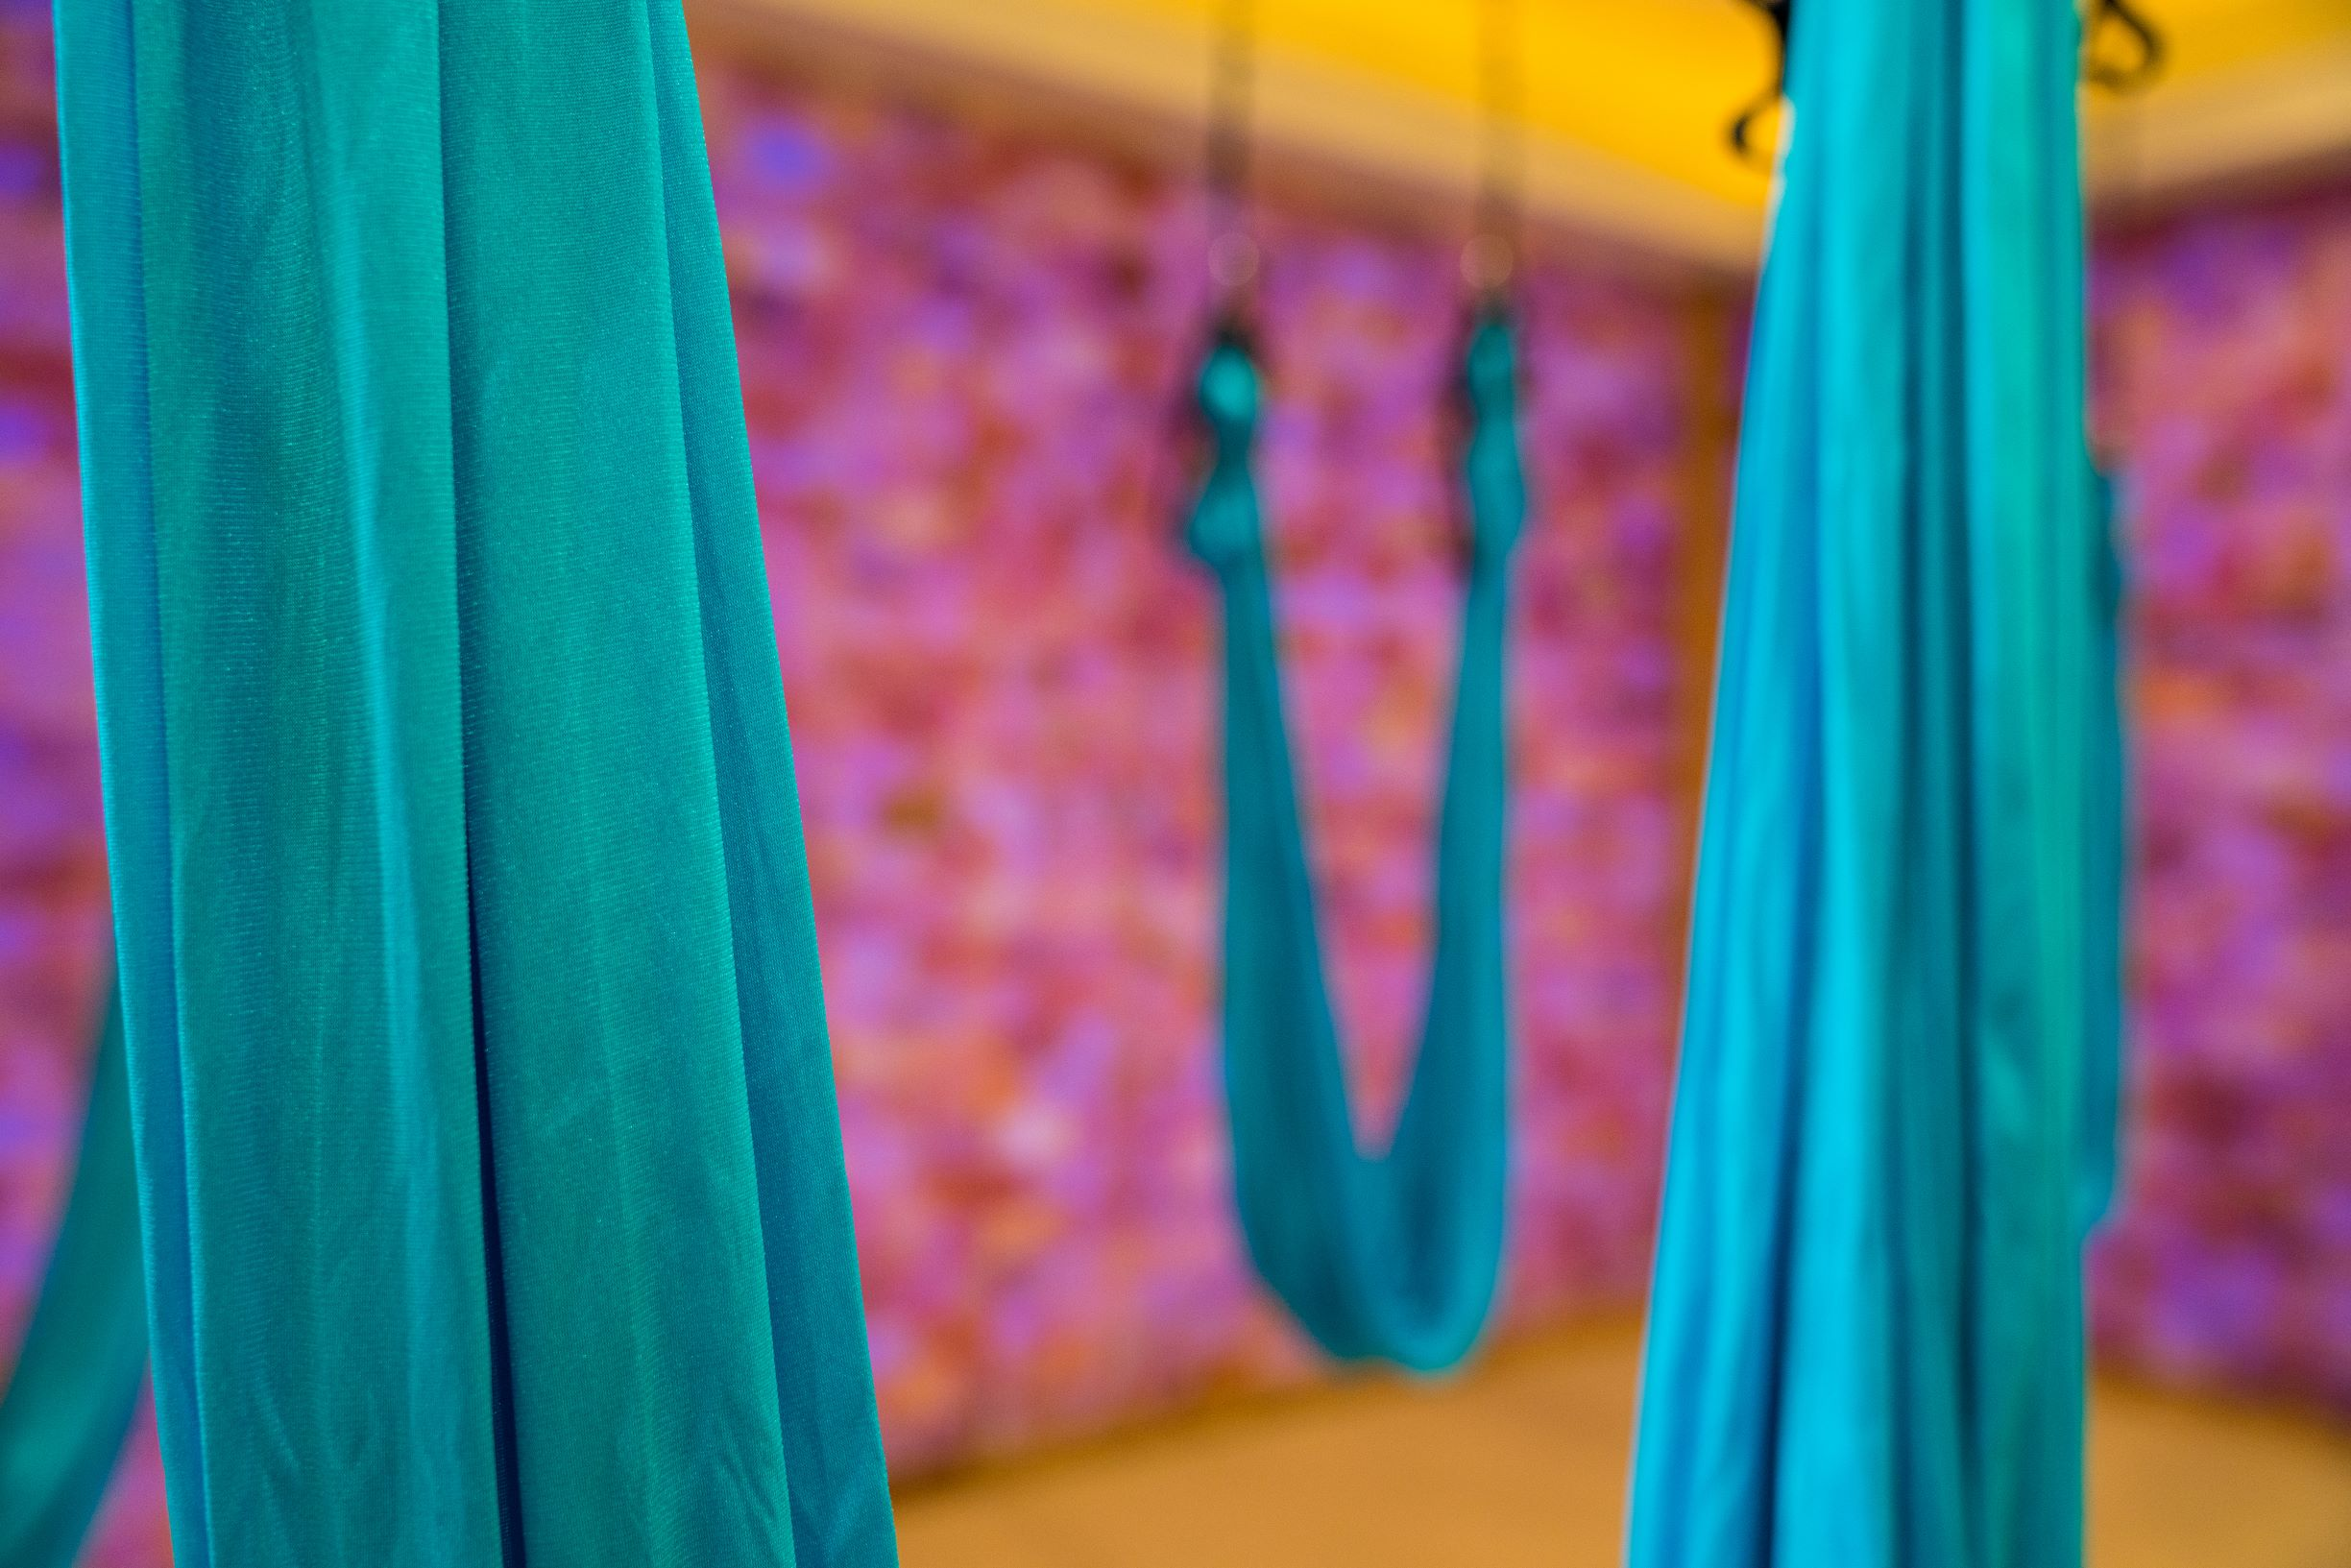 One of our favorite offerings at Pineapple Life is our series of Pineapple Flight classes, also known as Aerial Yoga. This class, in a non-heated room, was designed for all levels. Rest assured that our aerial silks have been tested to accommodate up to 1,000 pounds (not that they need to). Register early for these classes as they fill quickly!  Aerial Yoga offers a multitude of benefits to the body. Providing the opportunity for deeper stretches, longer inversions as well as an amazing way to attempt and practice hand stands, our Pineapple Flight classes have become one of our most popular yoga programs. Aerial yoga provides so many benefits to the body including (but not limited to) detoxification, improved flexibility, stress relief, back pressure relief, anti-aging and improved focus and memory.   Pineapple Flight:  Deepen your Yoga practice in a playful way while you use the hanging aerial silks. Traditional yoga poses take on a different vibe with the use of Silks and allow you to strengthen, tone, and energize - not to mention, invert and allow gravity to naturally decompress your spine. Give it a try, most likely you will become hooked on flying! All levels welcome. Bring mat and water and no jewelry please.   Chill Flight:  This evening class combines four wonderful elements into one deeply relaxing class that will have you slipping into your evening slumber feeling dreamy and calm. Using aerial silks, candlelight, yoga and meditation will almost guarantee one of the best sleeps you've ever had and who couldn't use that? All levels Welcome. Practiced in room temperature. Bring mat and water and no jewelry please.